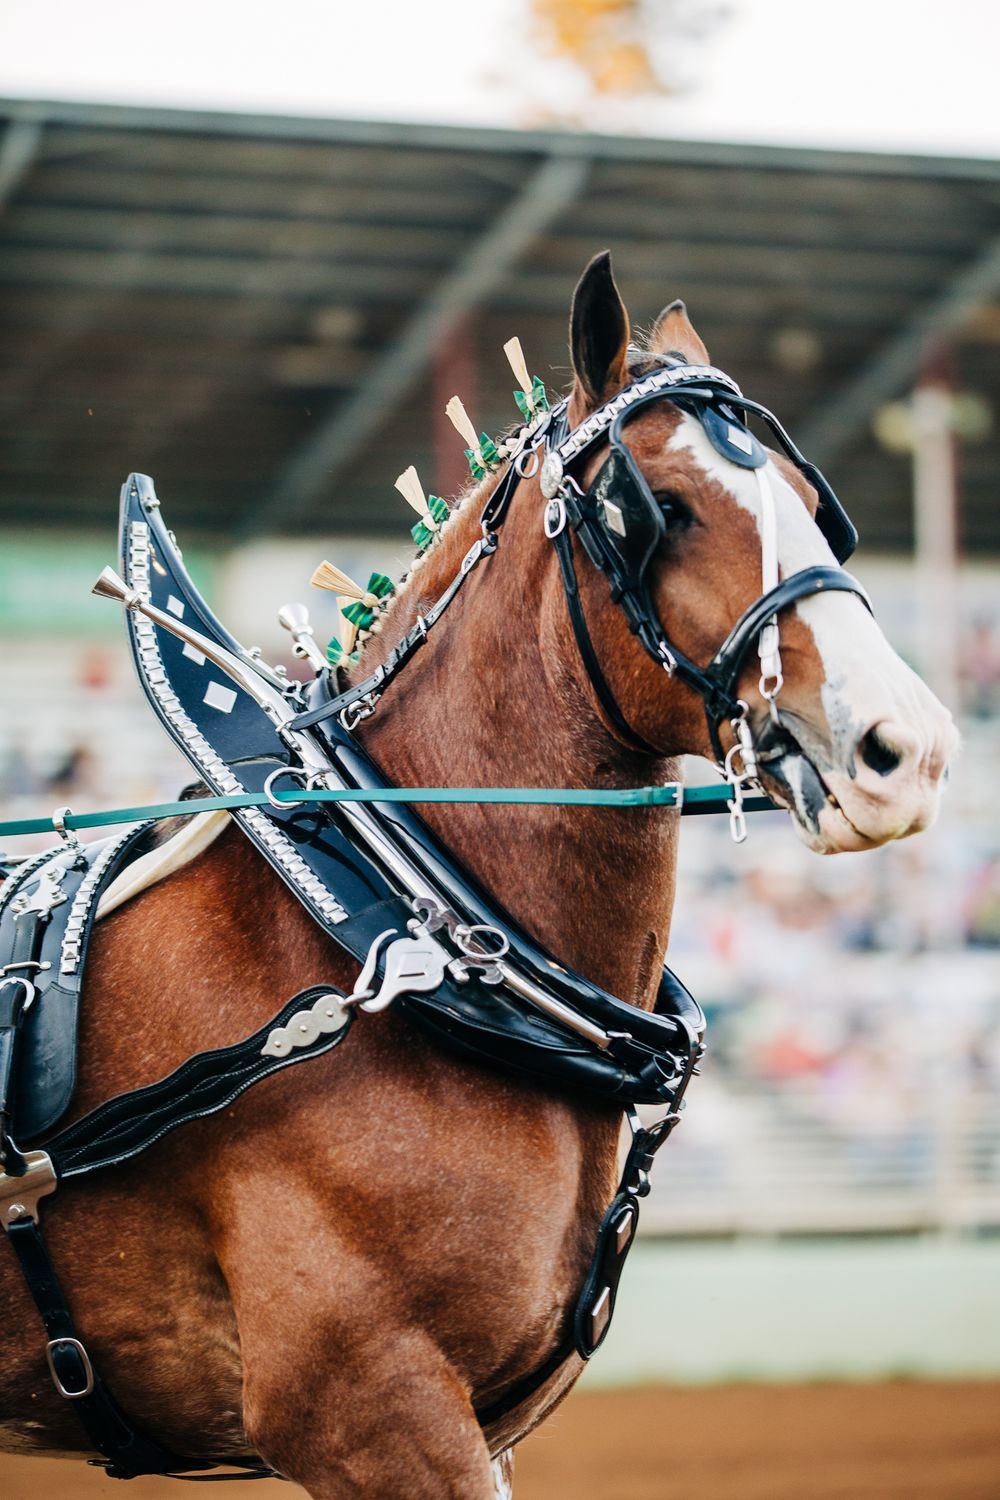 Draft Horse Classic | Lenkaland Photography at the Nevada County Fairgrounds in Grass Valley, California